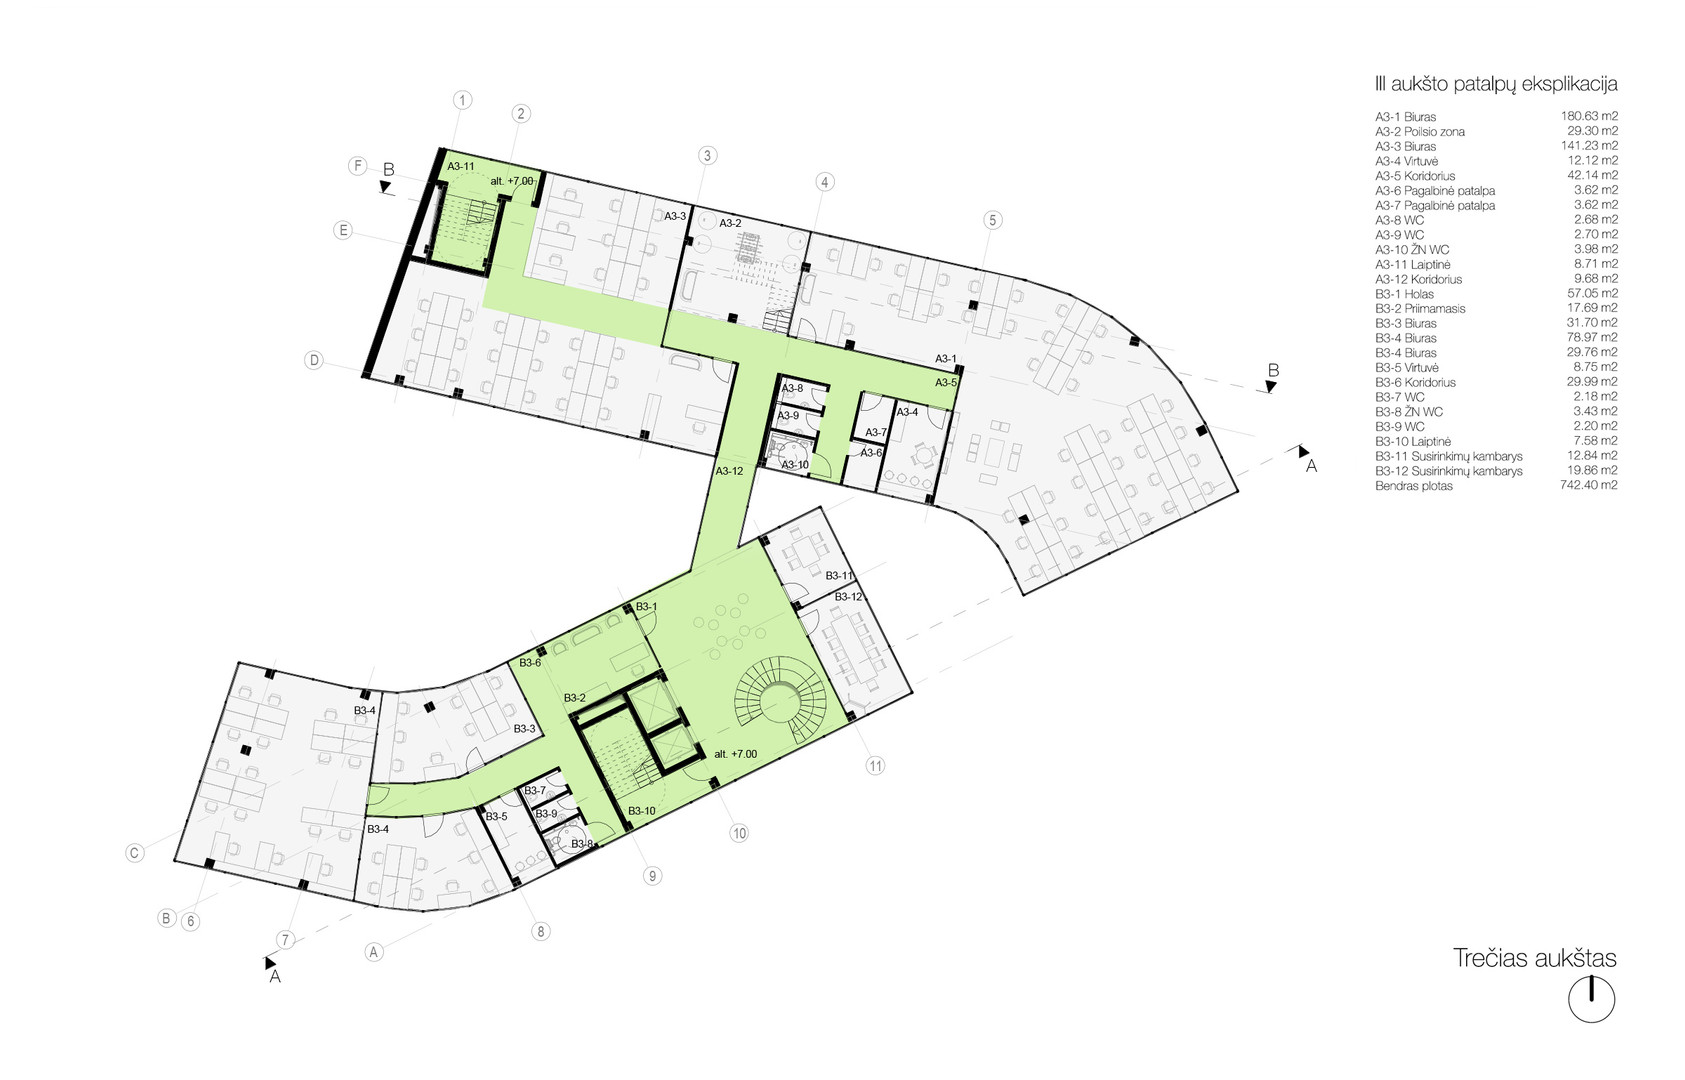 Plan level 03 - offices